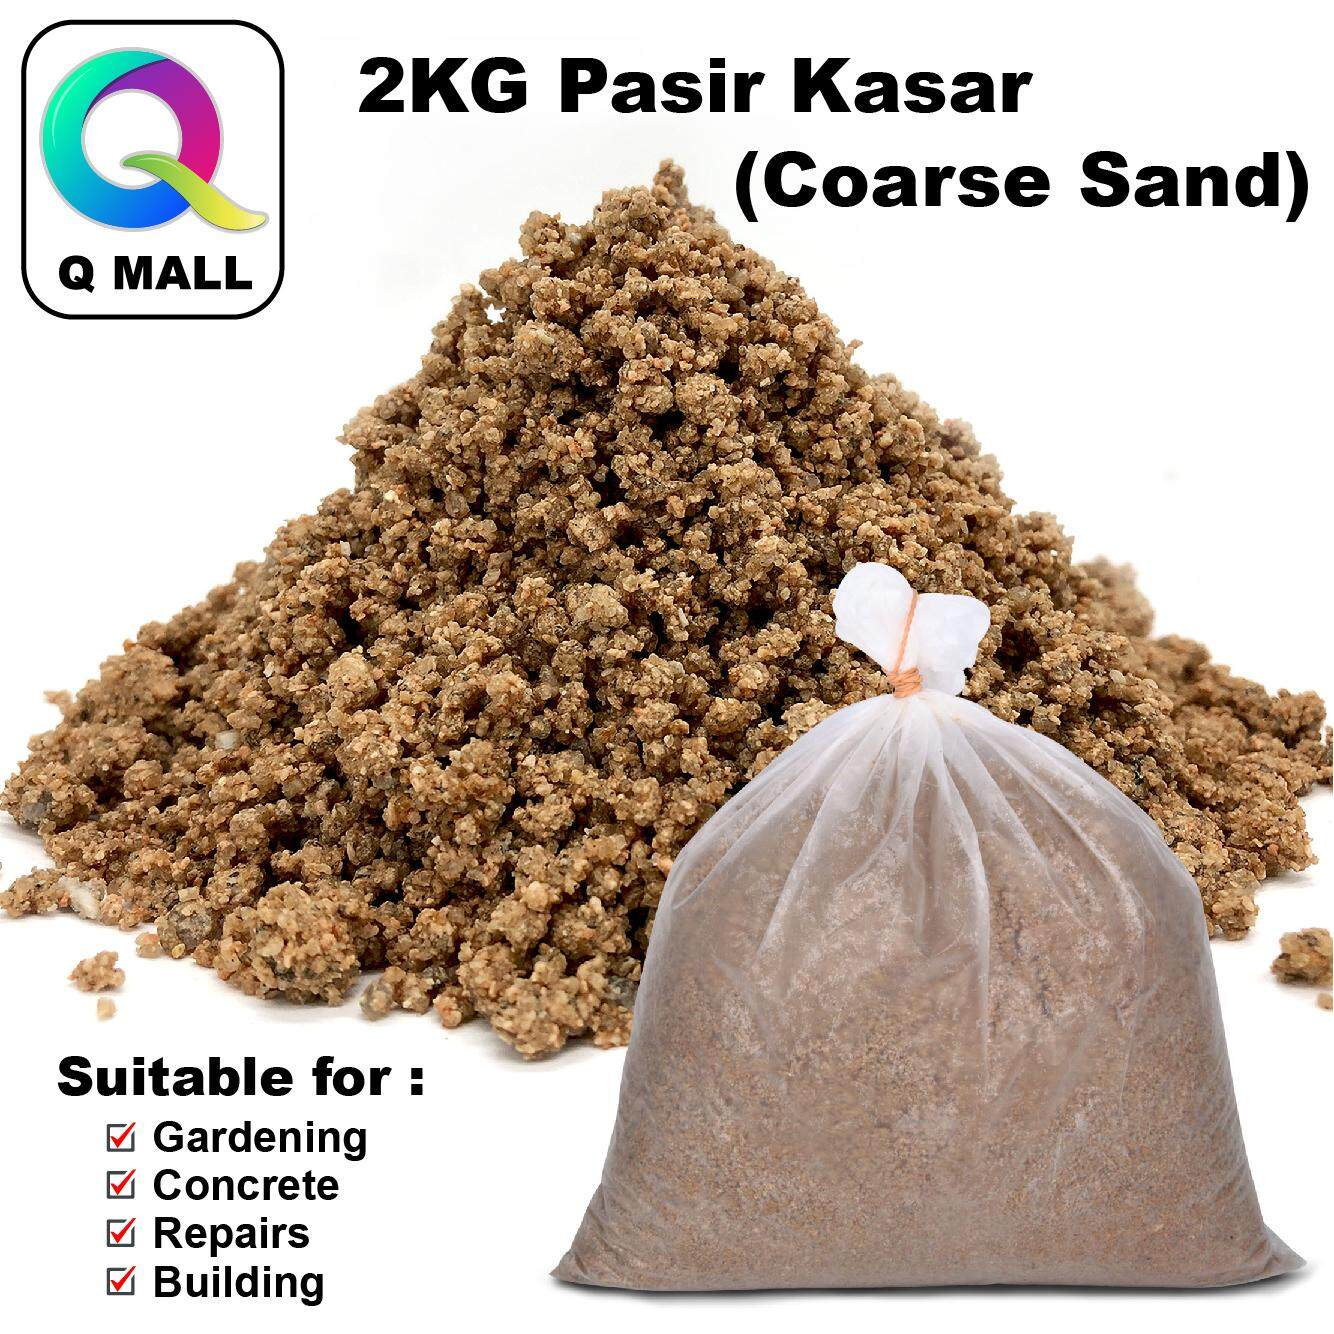 Q MALL 2KG Coarse Sand / Pasir Kasar for Building Material Concrete Gardening DIY